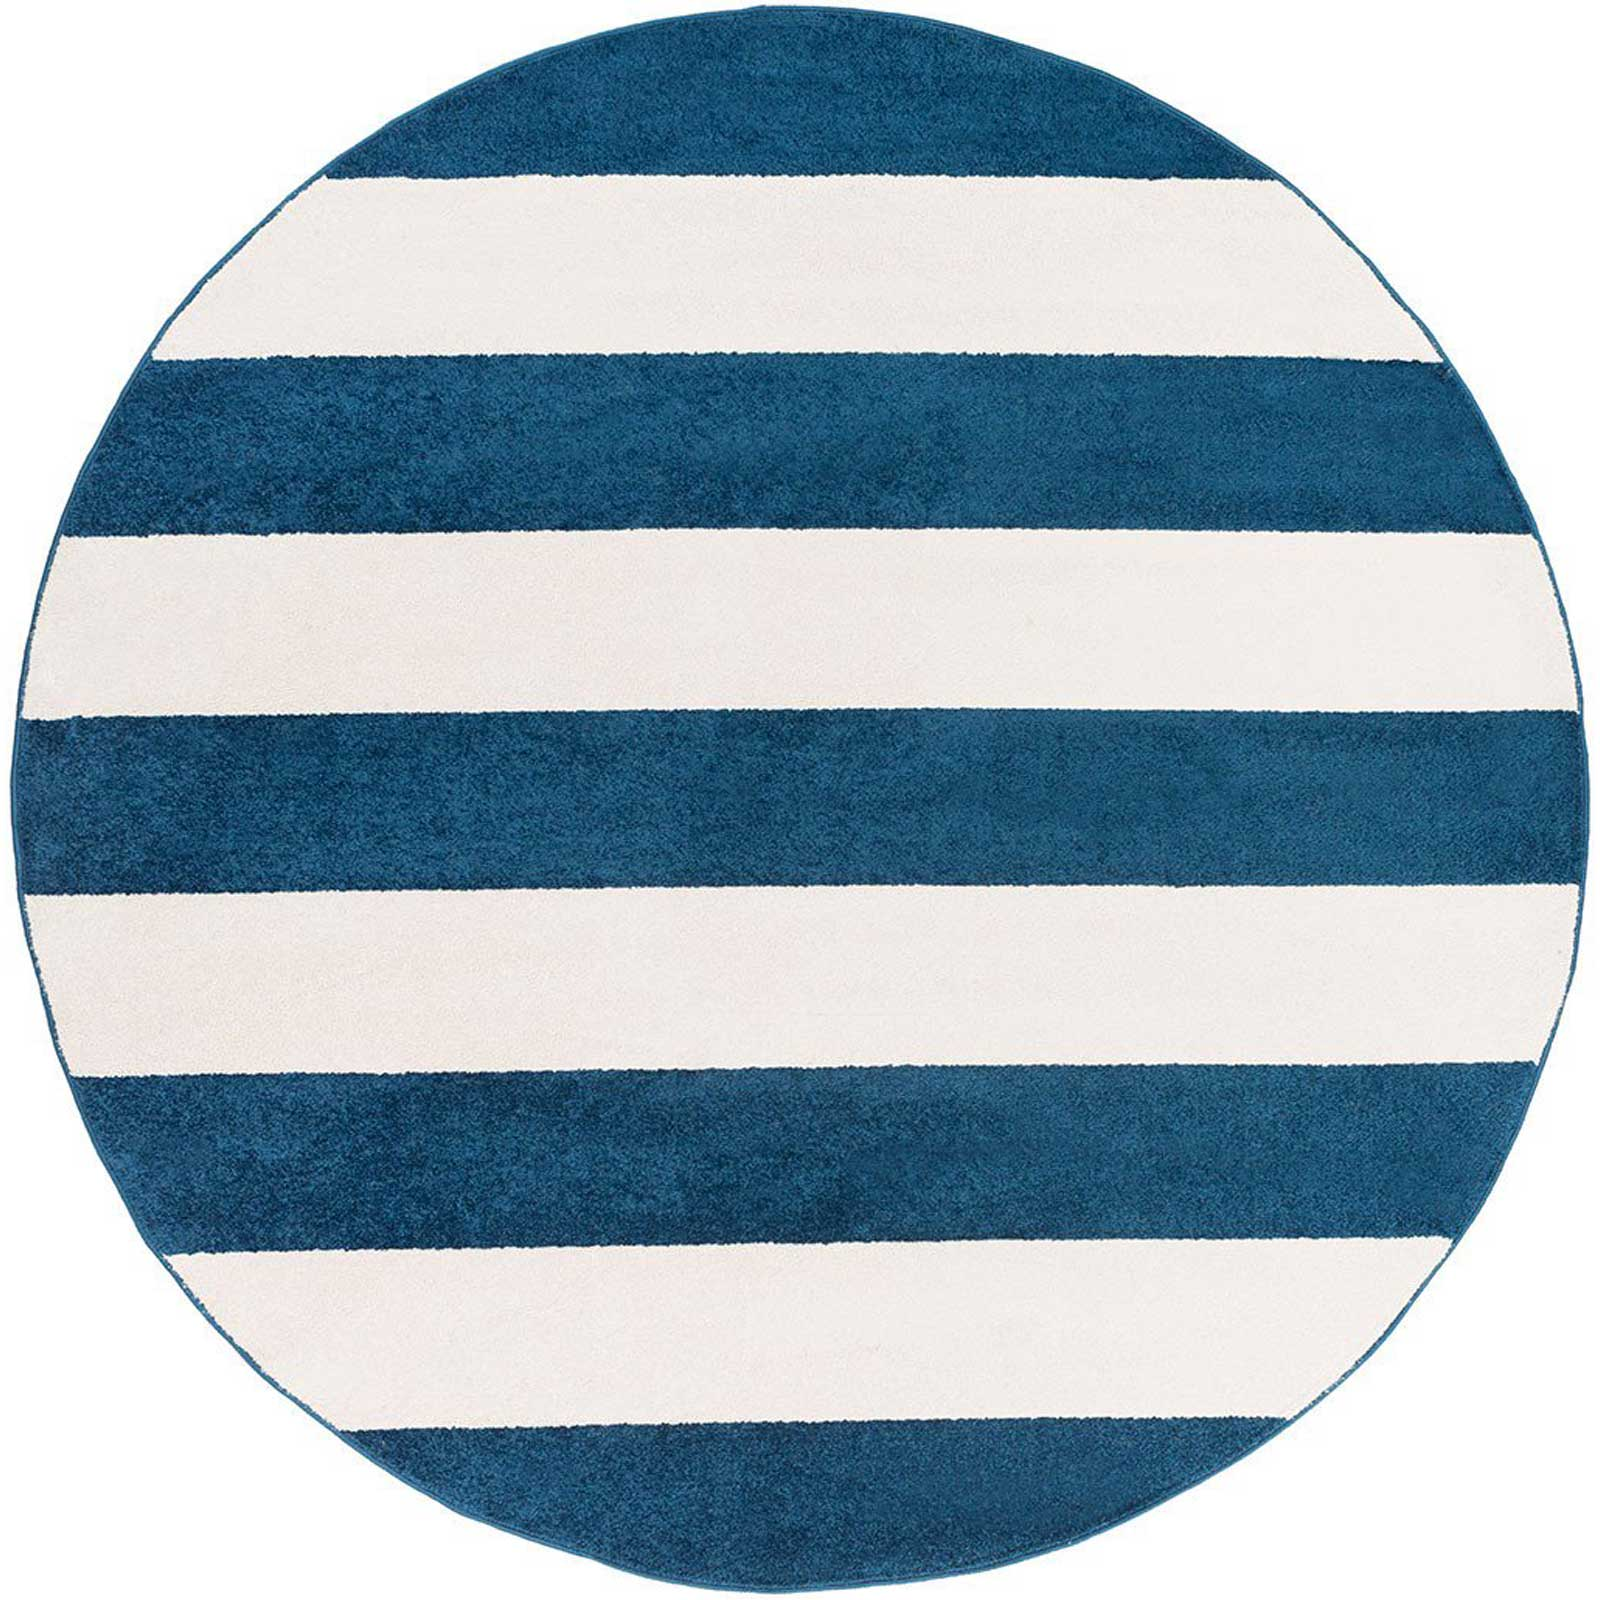 Horizon Striped Cobalt/Ivory Round Rug